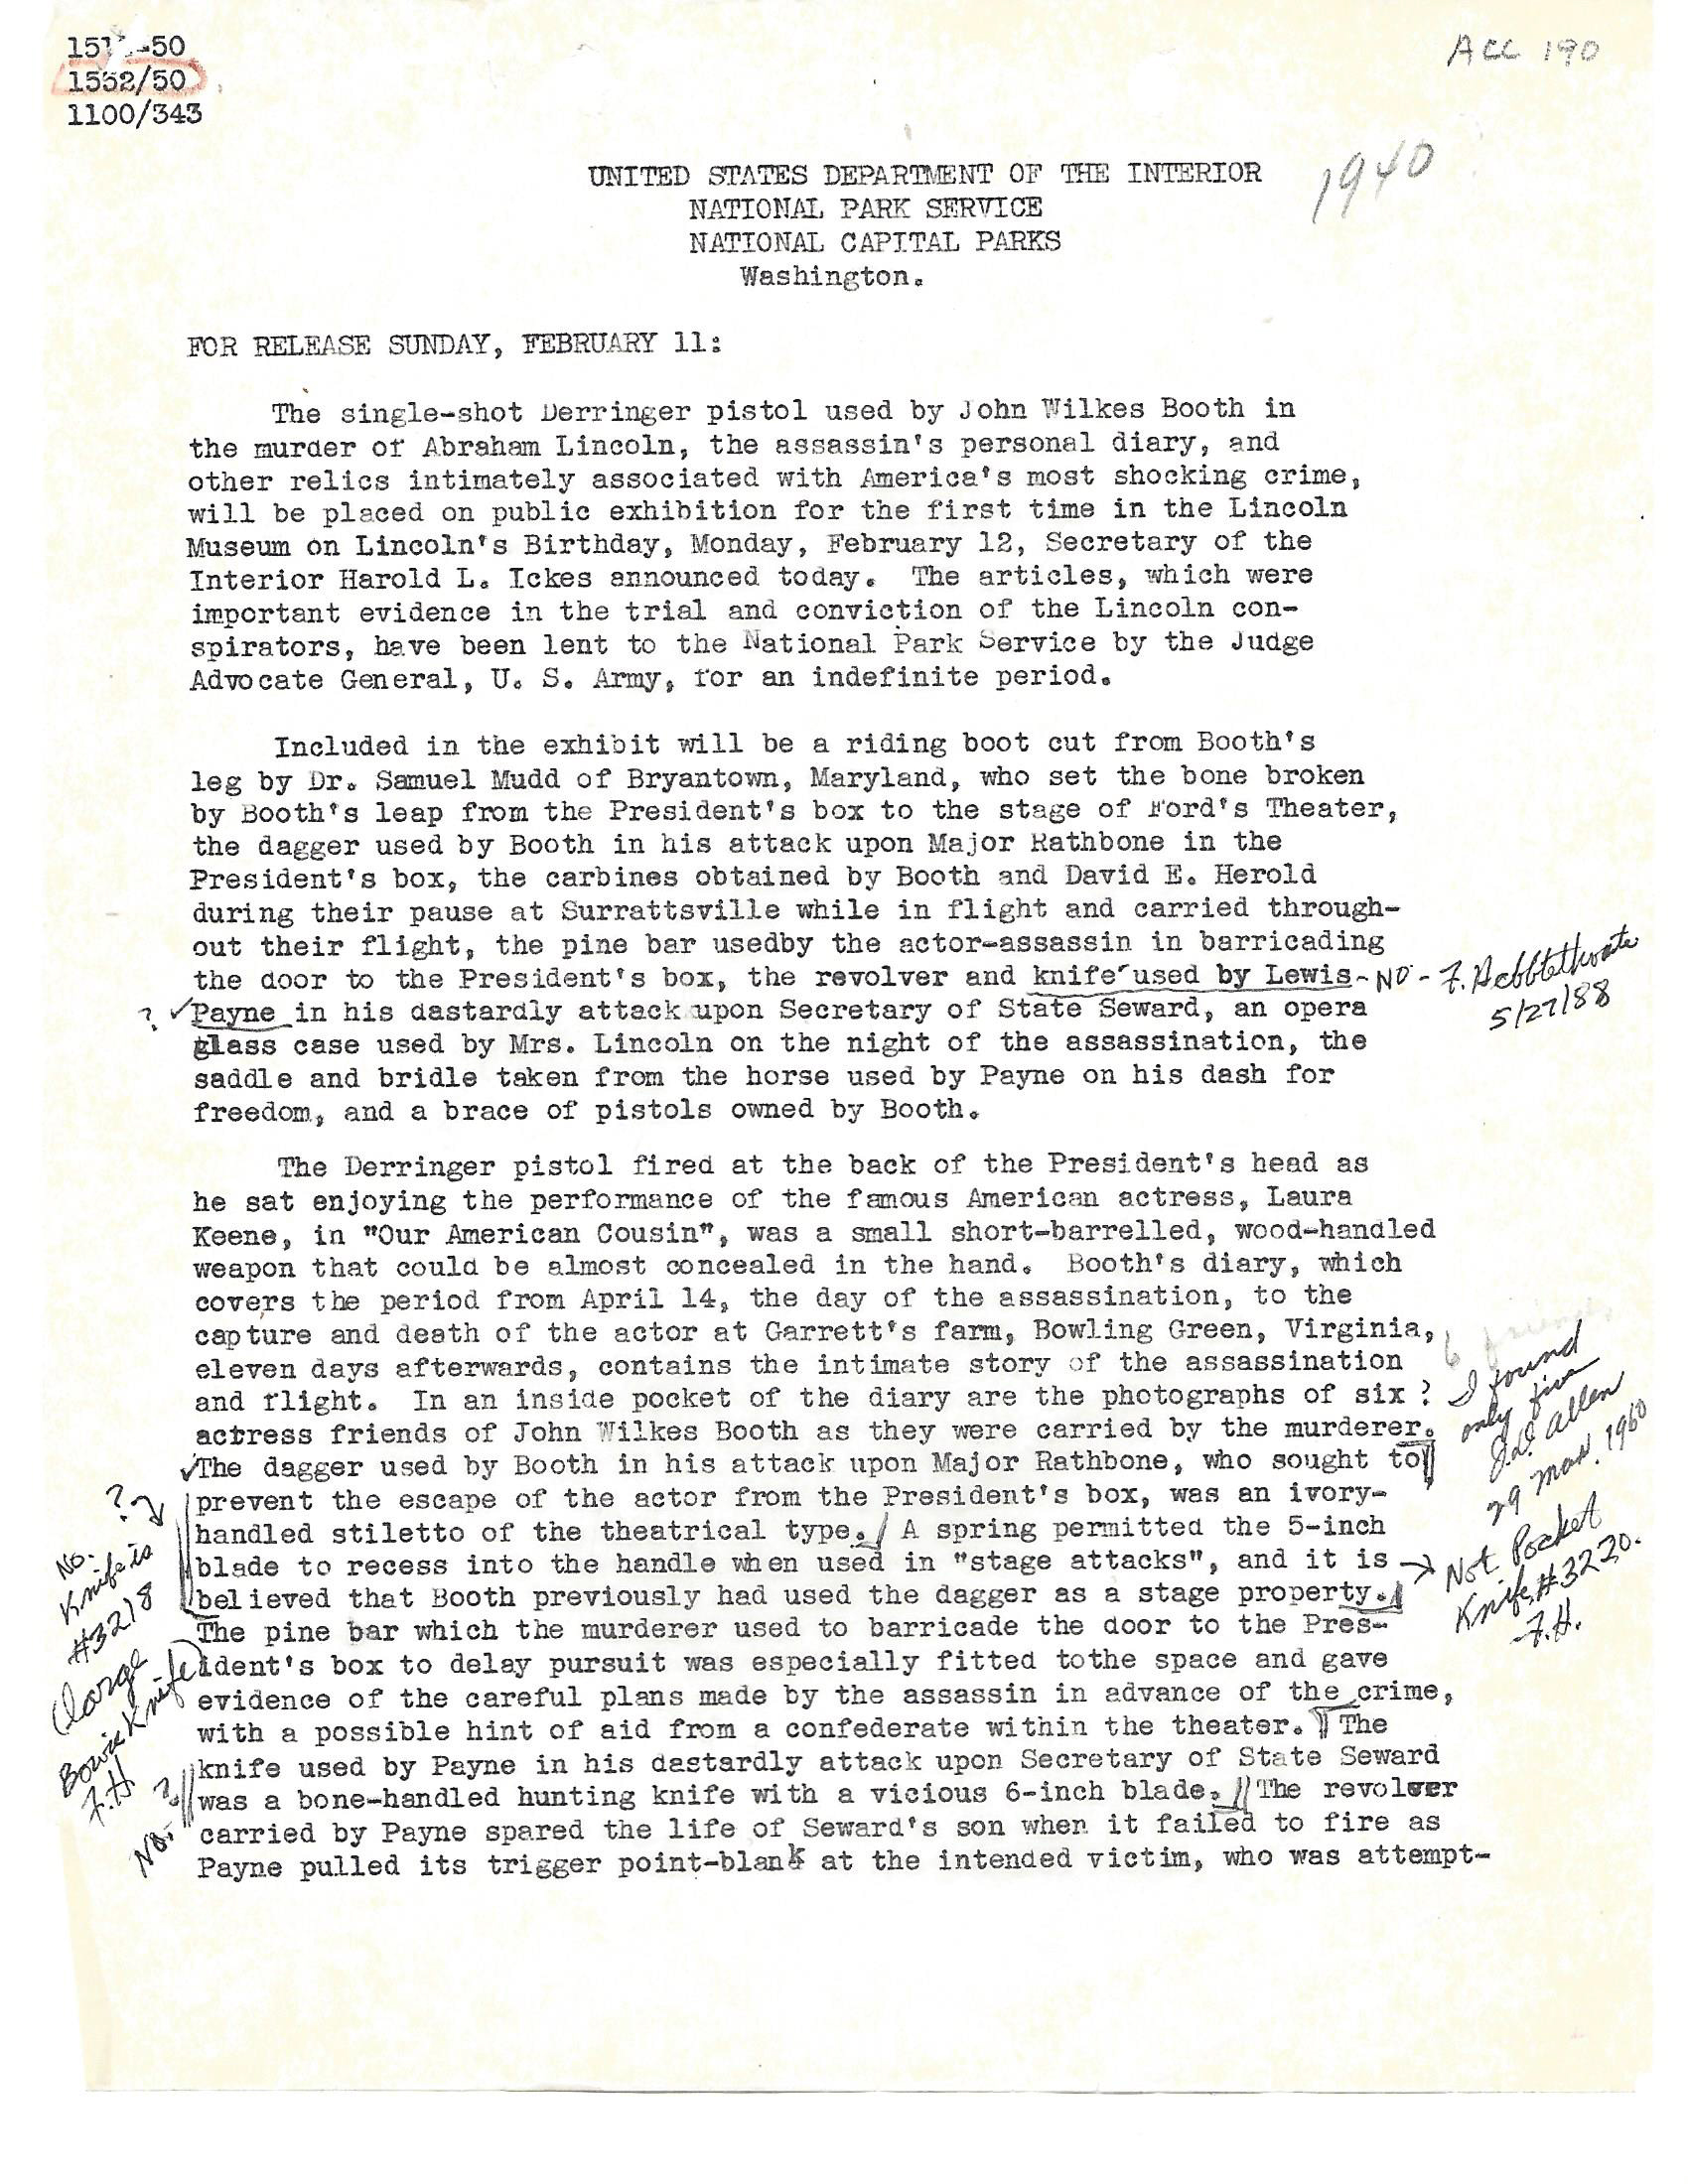 This 1940s Department of Interior press release touts items including John Wilkes Booth's deringer pistol, knives and other items coming into the Ford's Theatre National Historic Site collection.